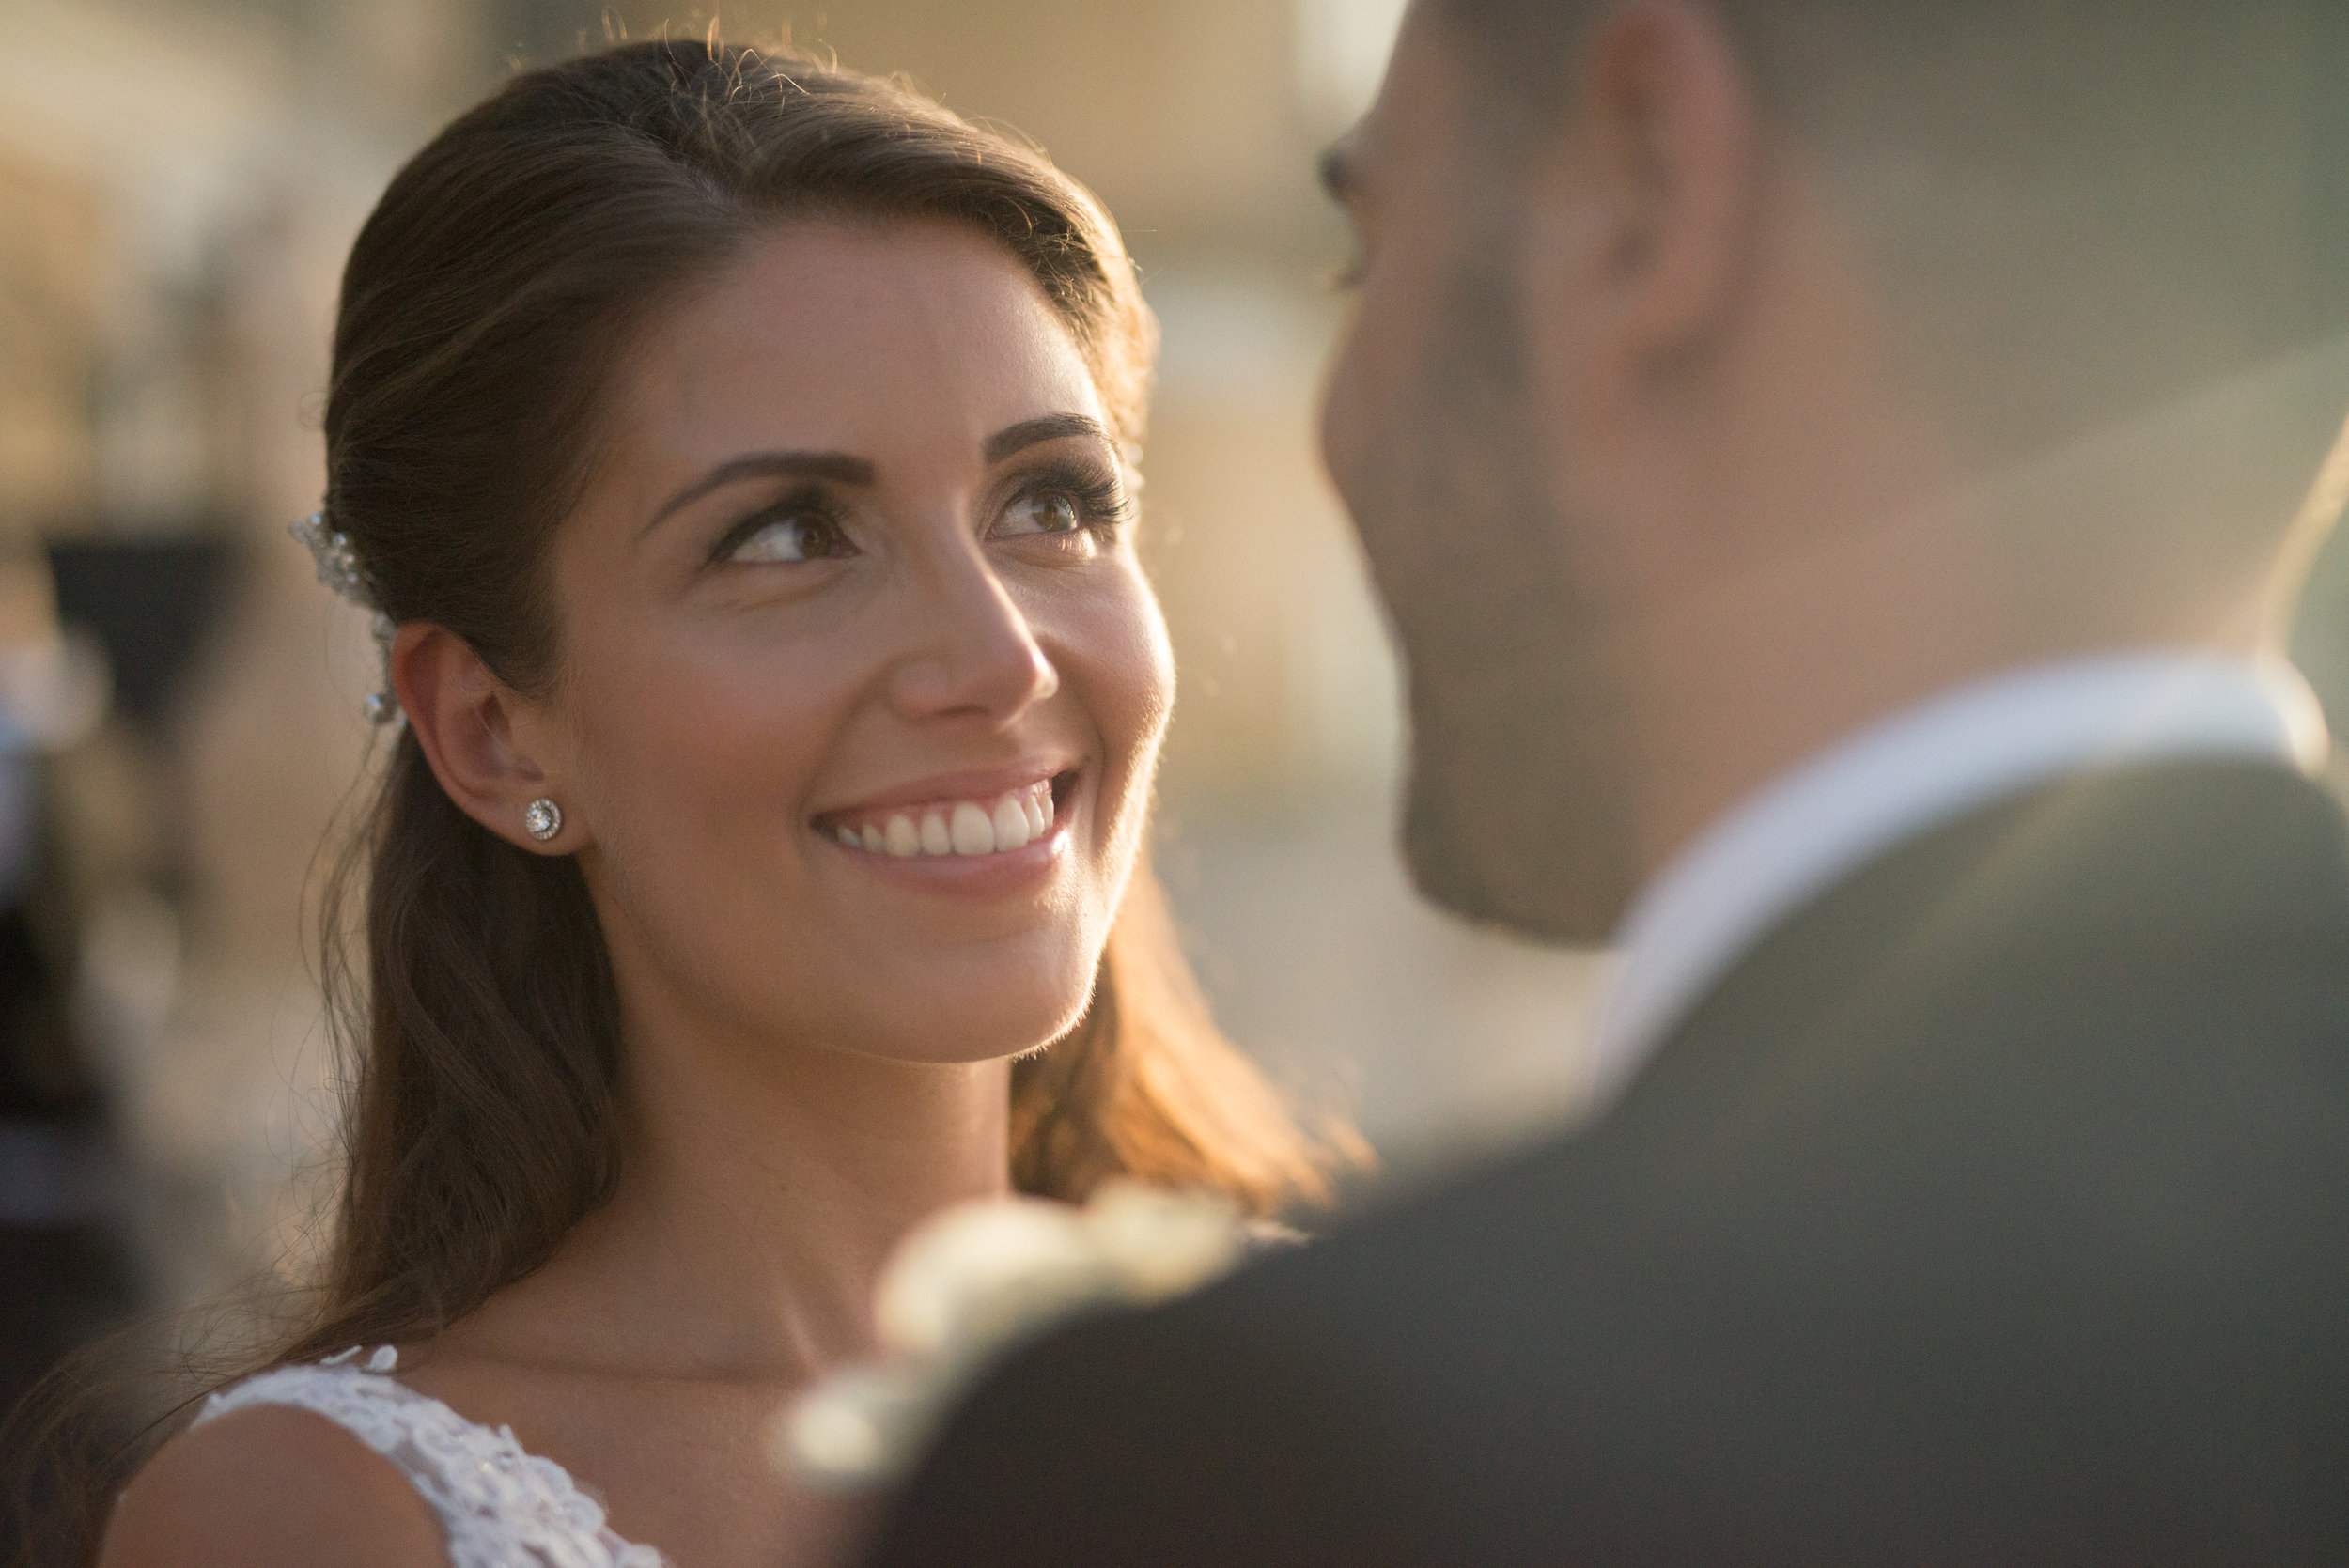 Daniela & Theo, August 2017 - Emily was our wedding planner for our magical wedding in Sorrento, Italy in August 2017.We could not have done it without her and she went above and beyond all of our expectations. She is organised, methodical and a pleasure to work with.We not only had the wedding of our dreams but also gained a new friend in the process.